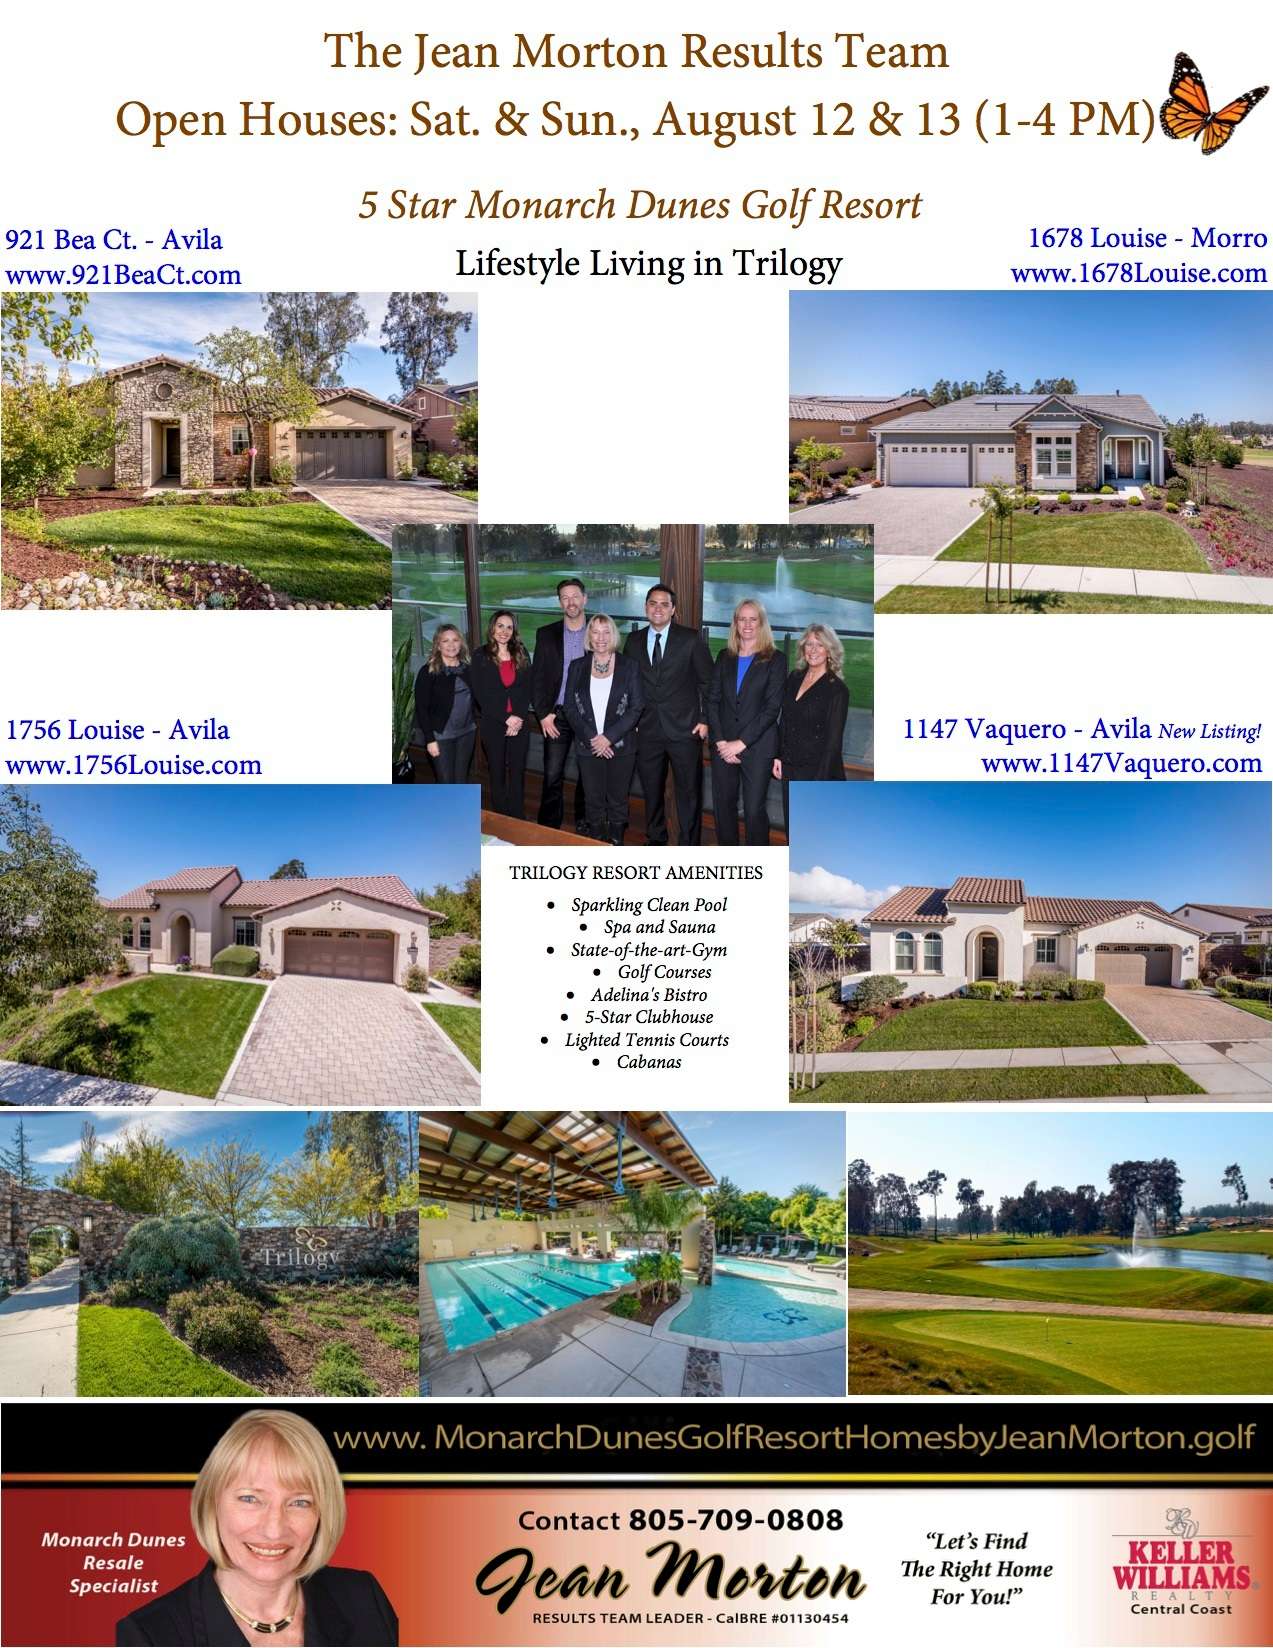 Open Houses August 12 & 13